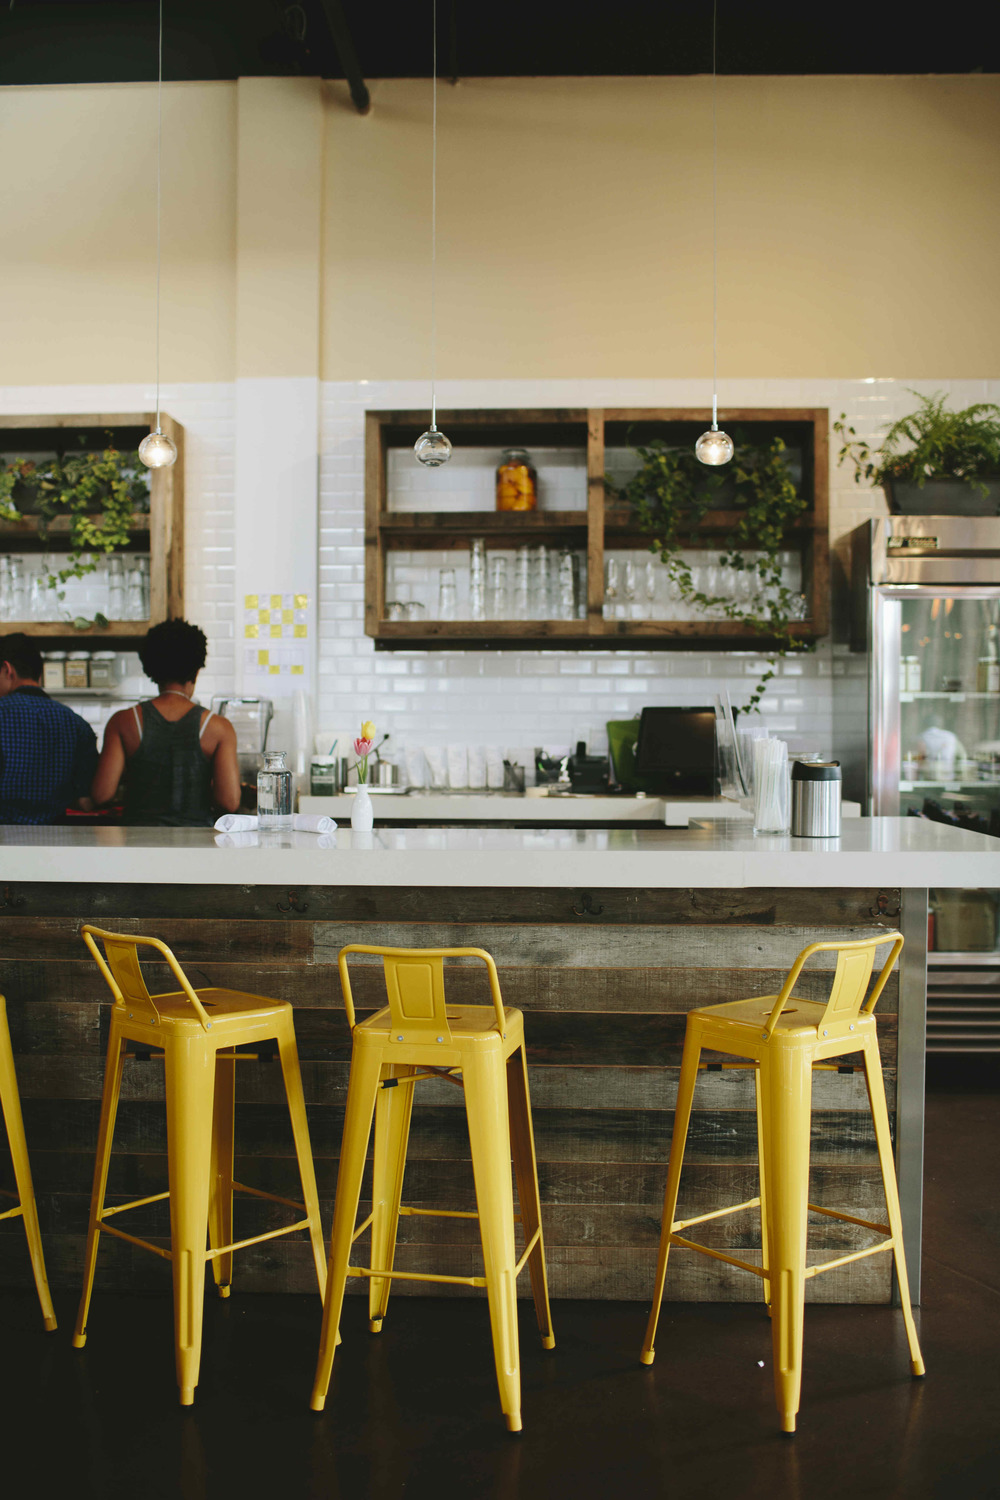 AshevilleFolk Summer City Guide: Charlotte NC with Megan Gielow. Luna's Living Kitchen. Creative vegan cuisine that supports local, organic farmers. The Veggie Burger & Cacao Cacao smoothies are great